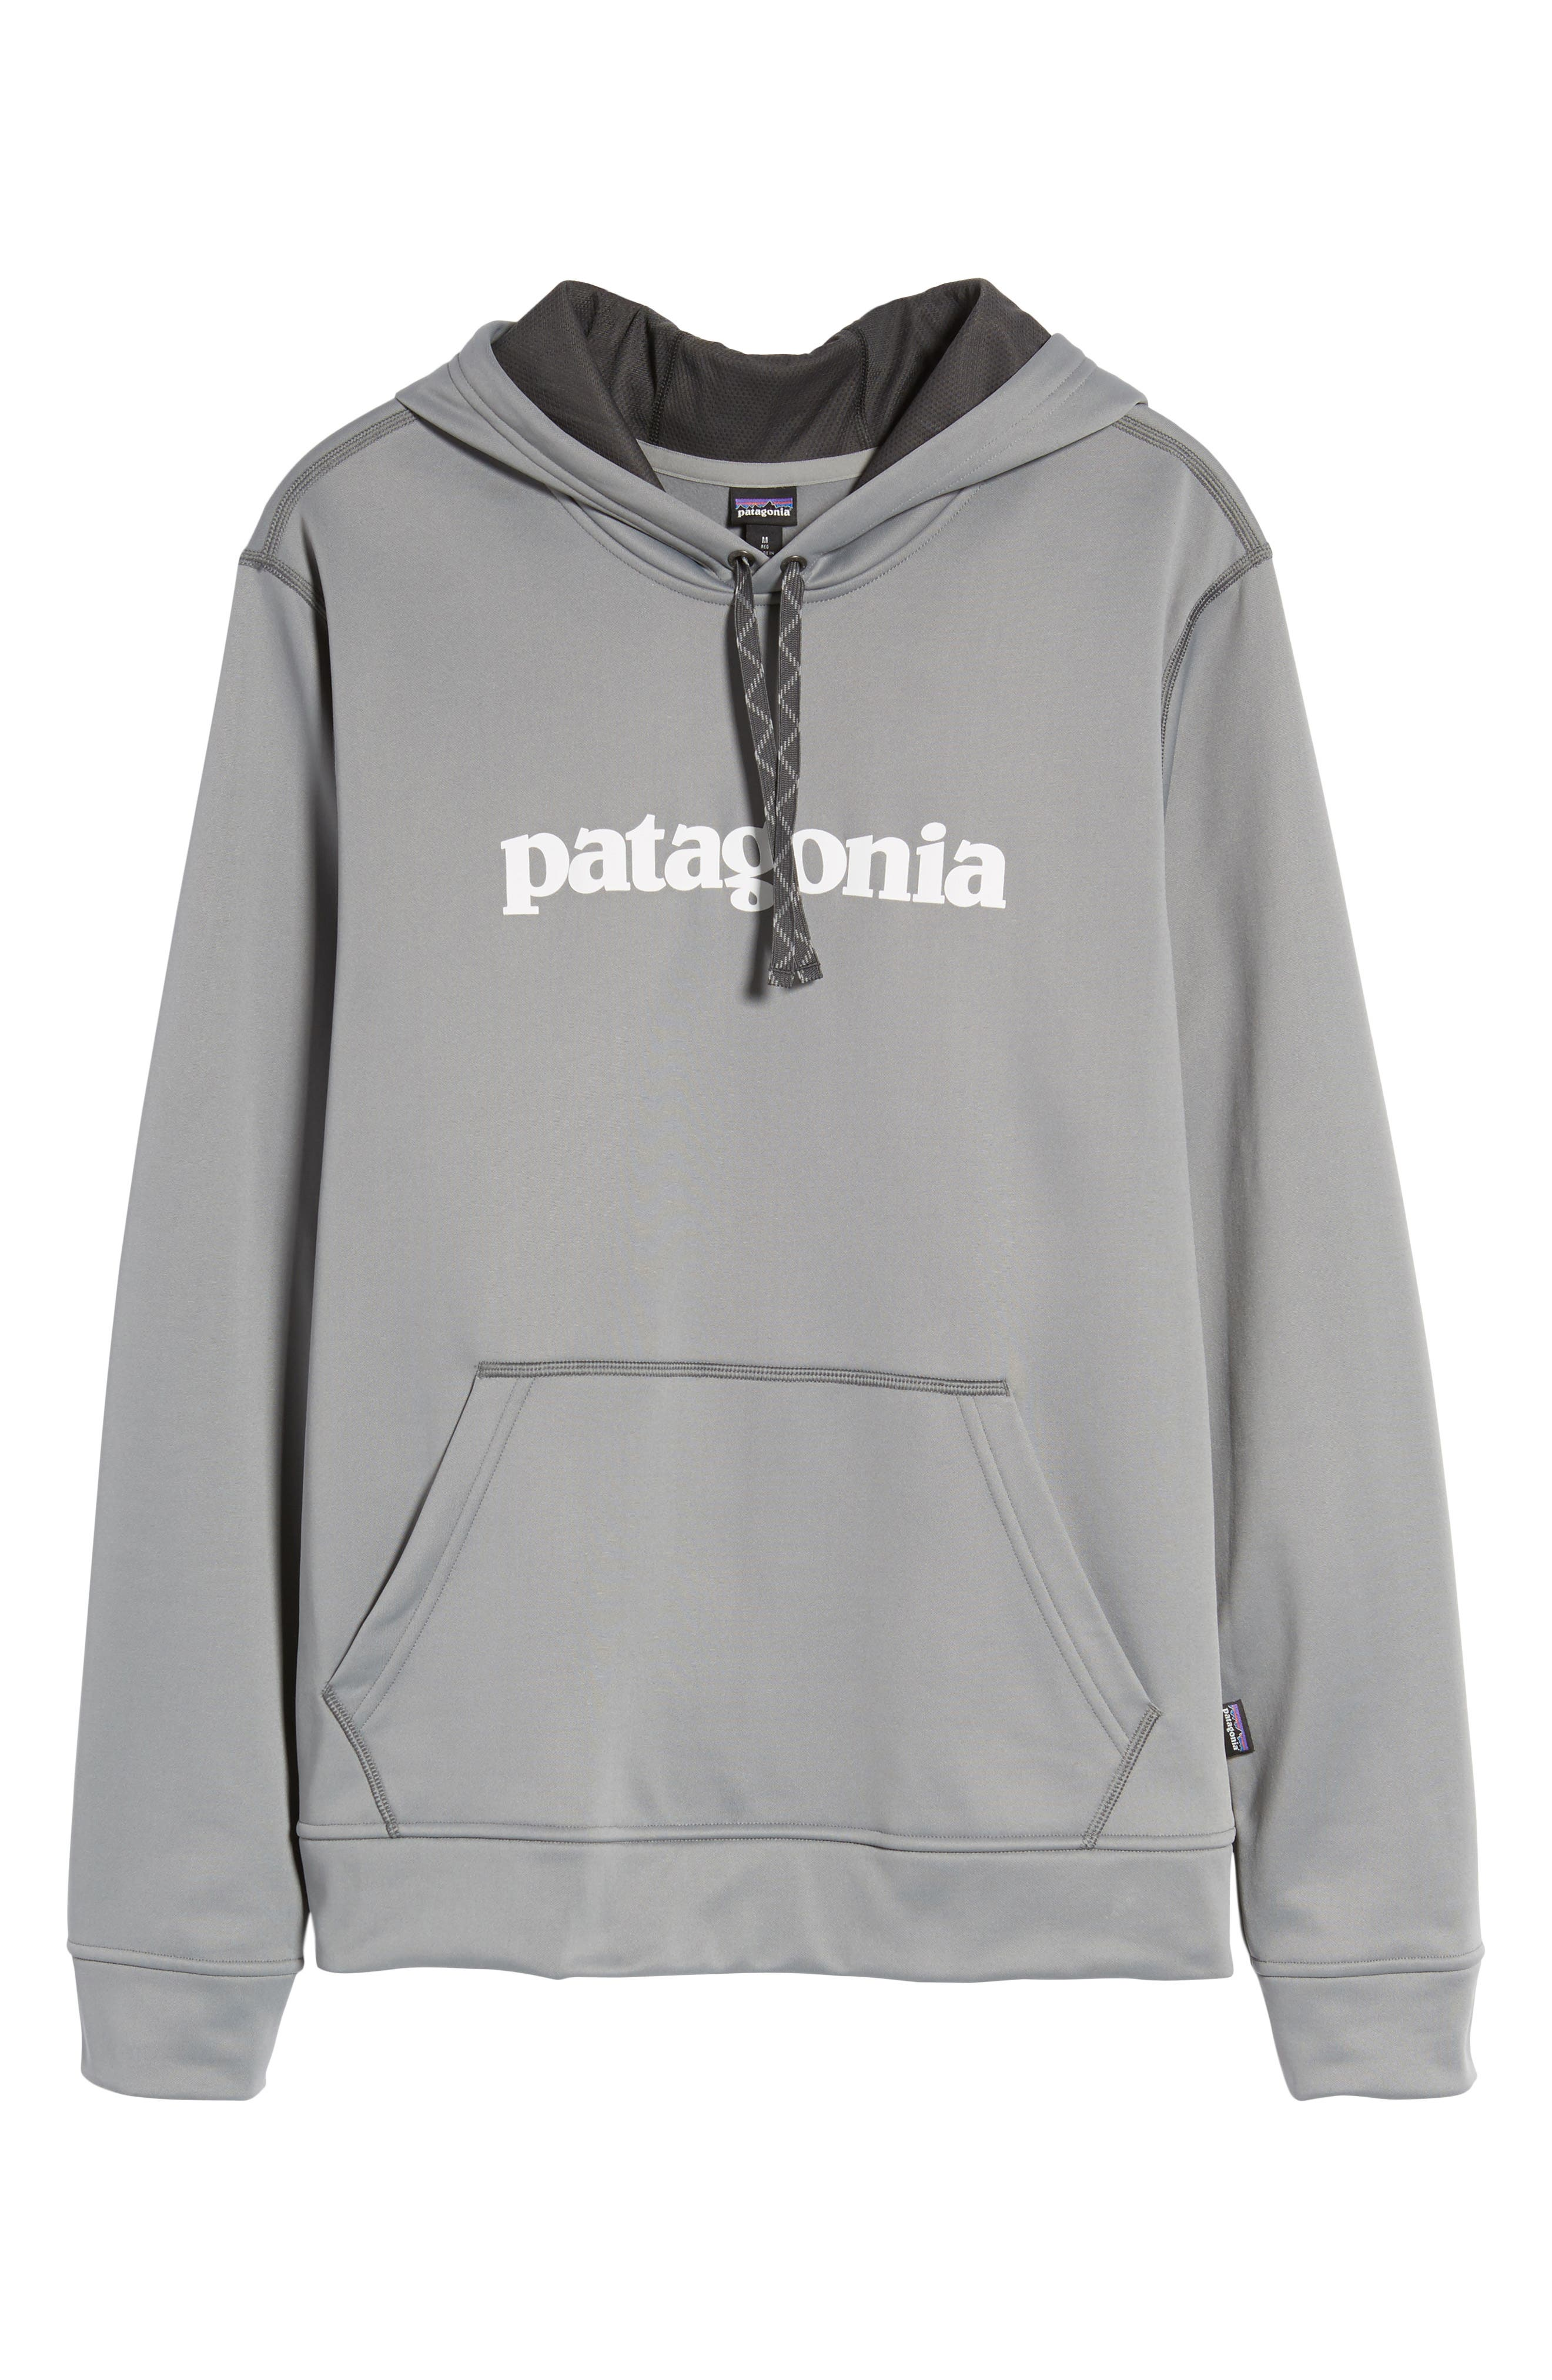 Polycycle Hoodie,                             Alternate thumbnail 6, color,                             Feather Grey/ White